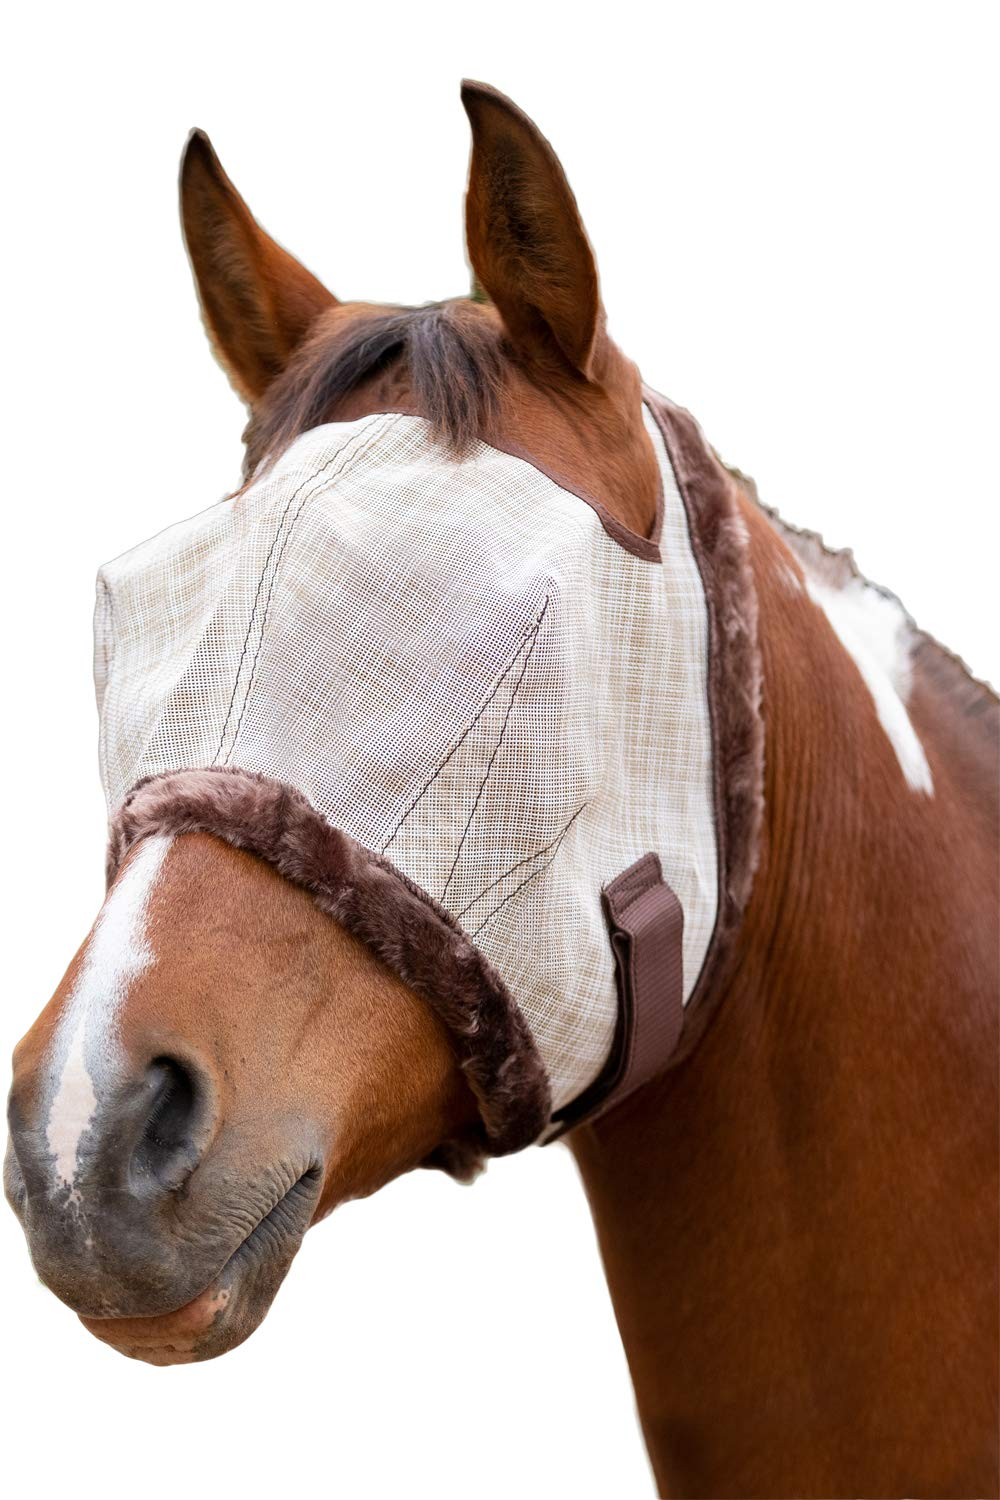 Kensington Fly Mask Fleece Trim for Horses - Protects Face, Eyes from Flies, UV Rays While Allowing Full Visibility - Breathable Non Heat Transferring, Perfect Year Round, (L, Grey) by Kensington Protective Products